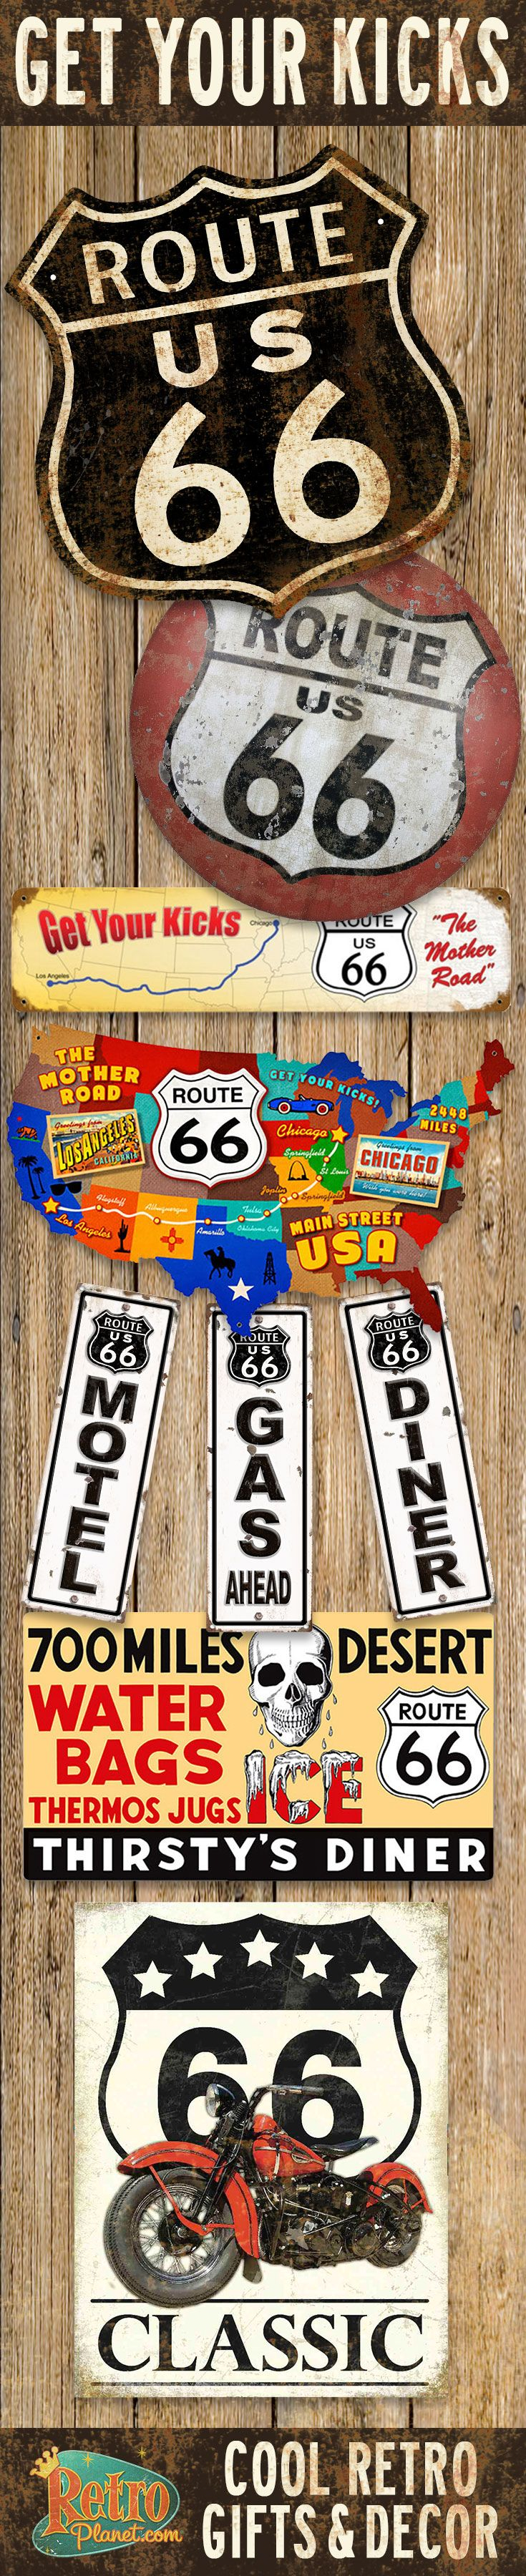 Route 66, America's Highway paves the way for fun decor and gifts. From coffee mugs to wall decals, gifts and decor that are sure to appeal to all Mother Road travelers and collectors.